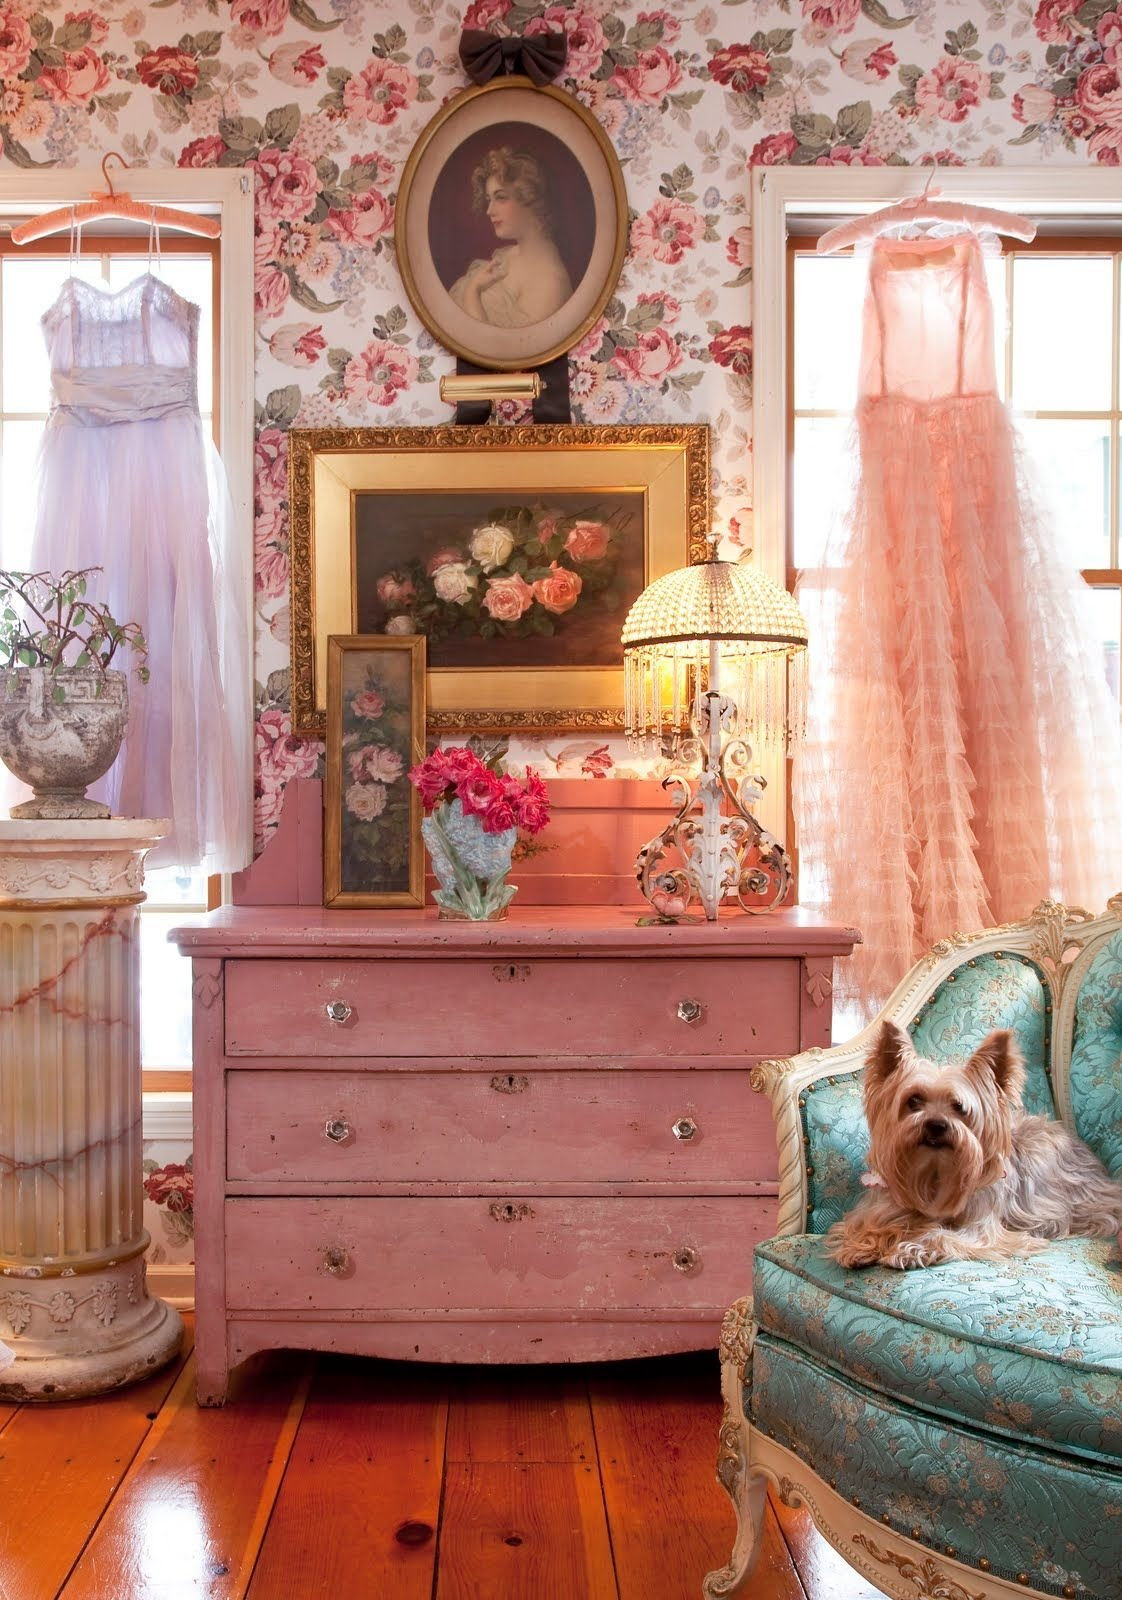 Best Vintage Bedroom Decor Pictures Photos And Images For Facebook Tumblr Pinterest And Twitter With Pictures